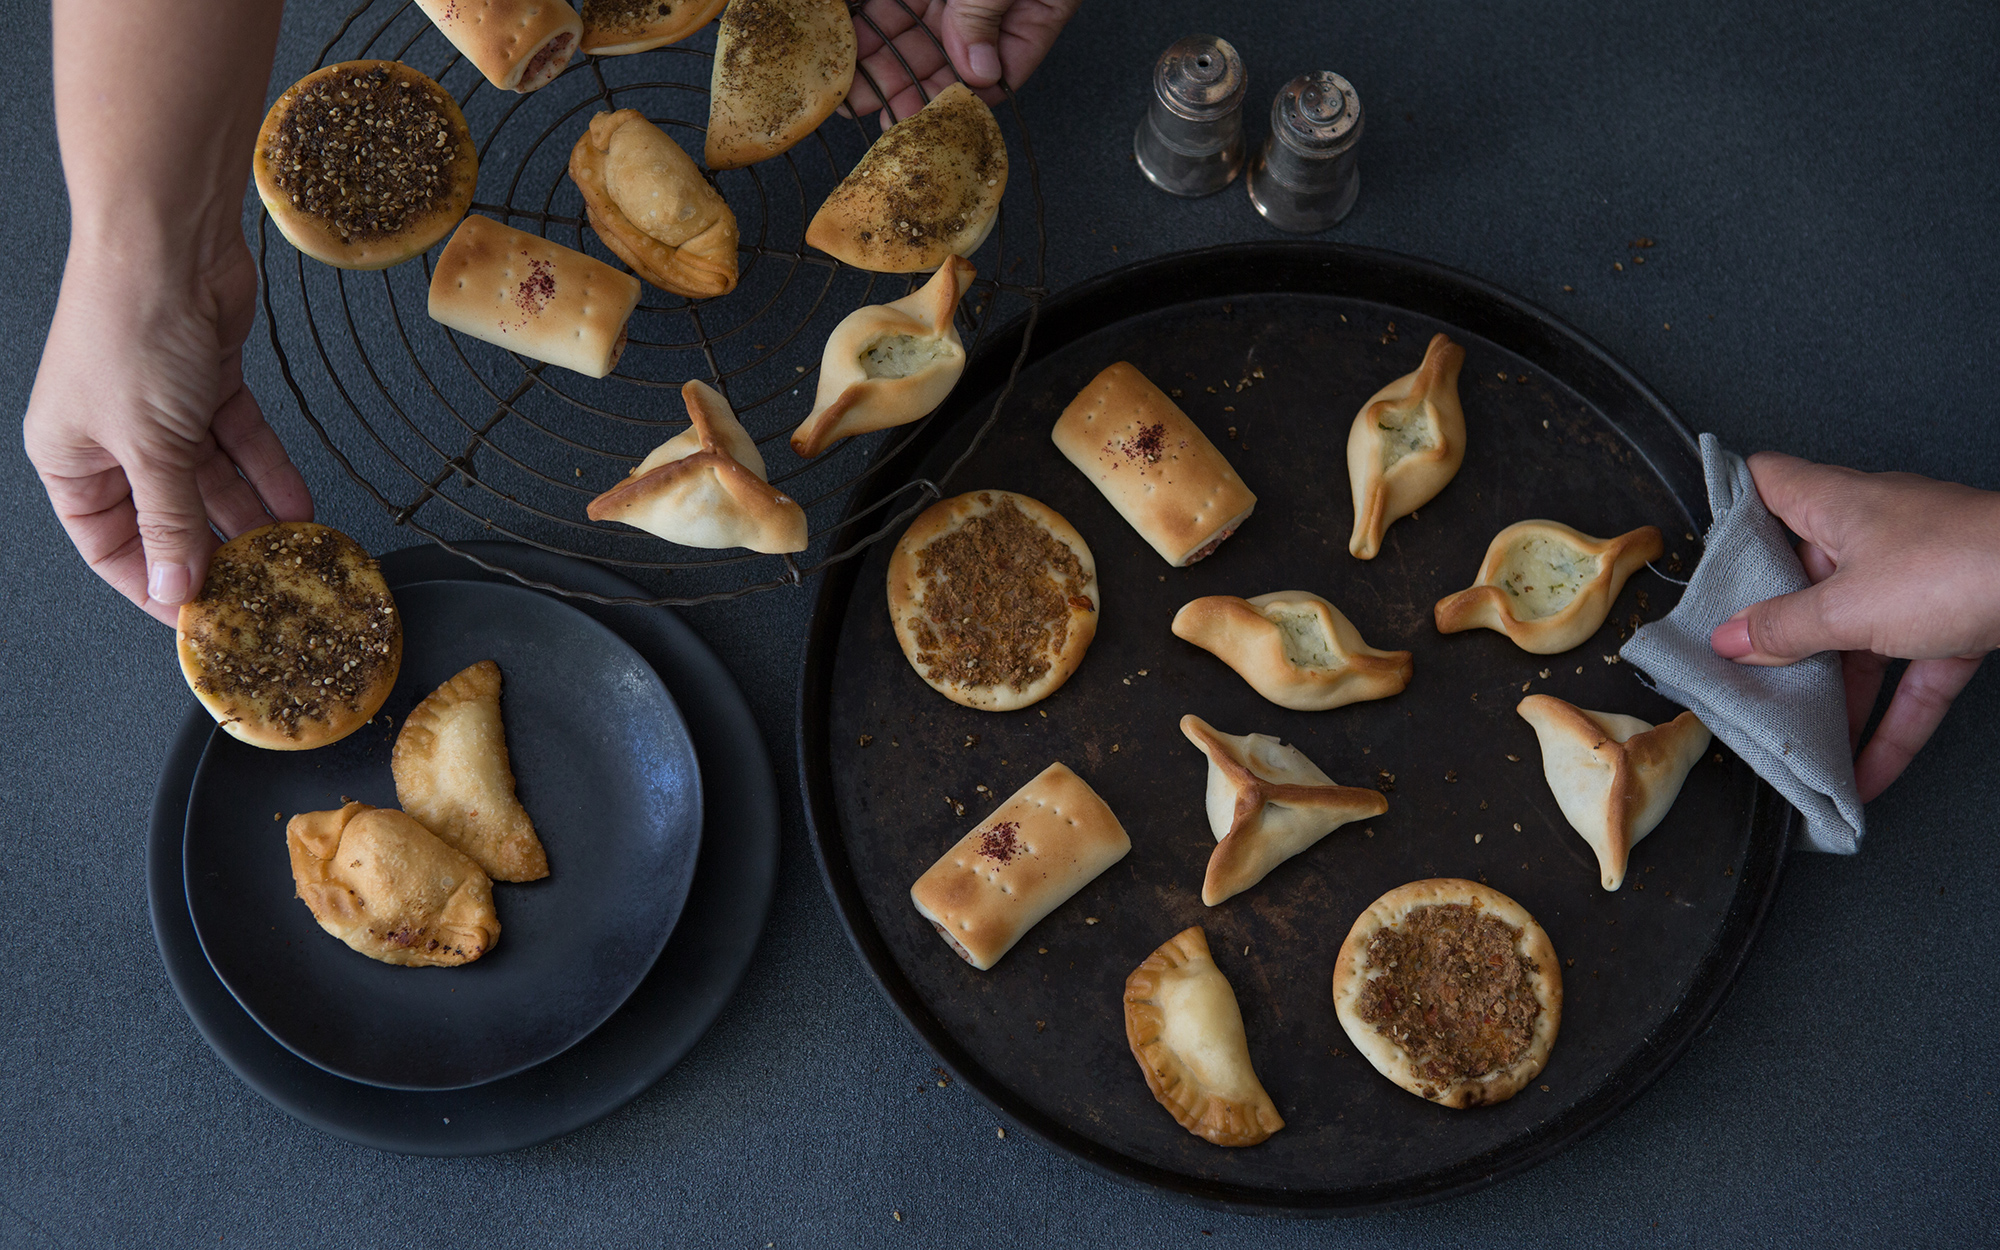 Hand pies